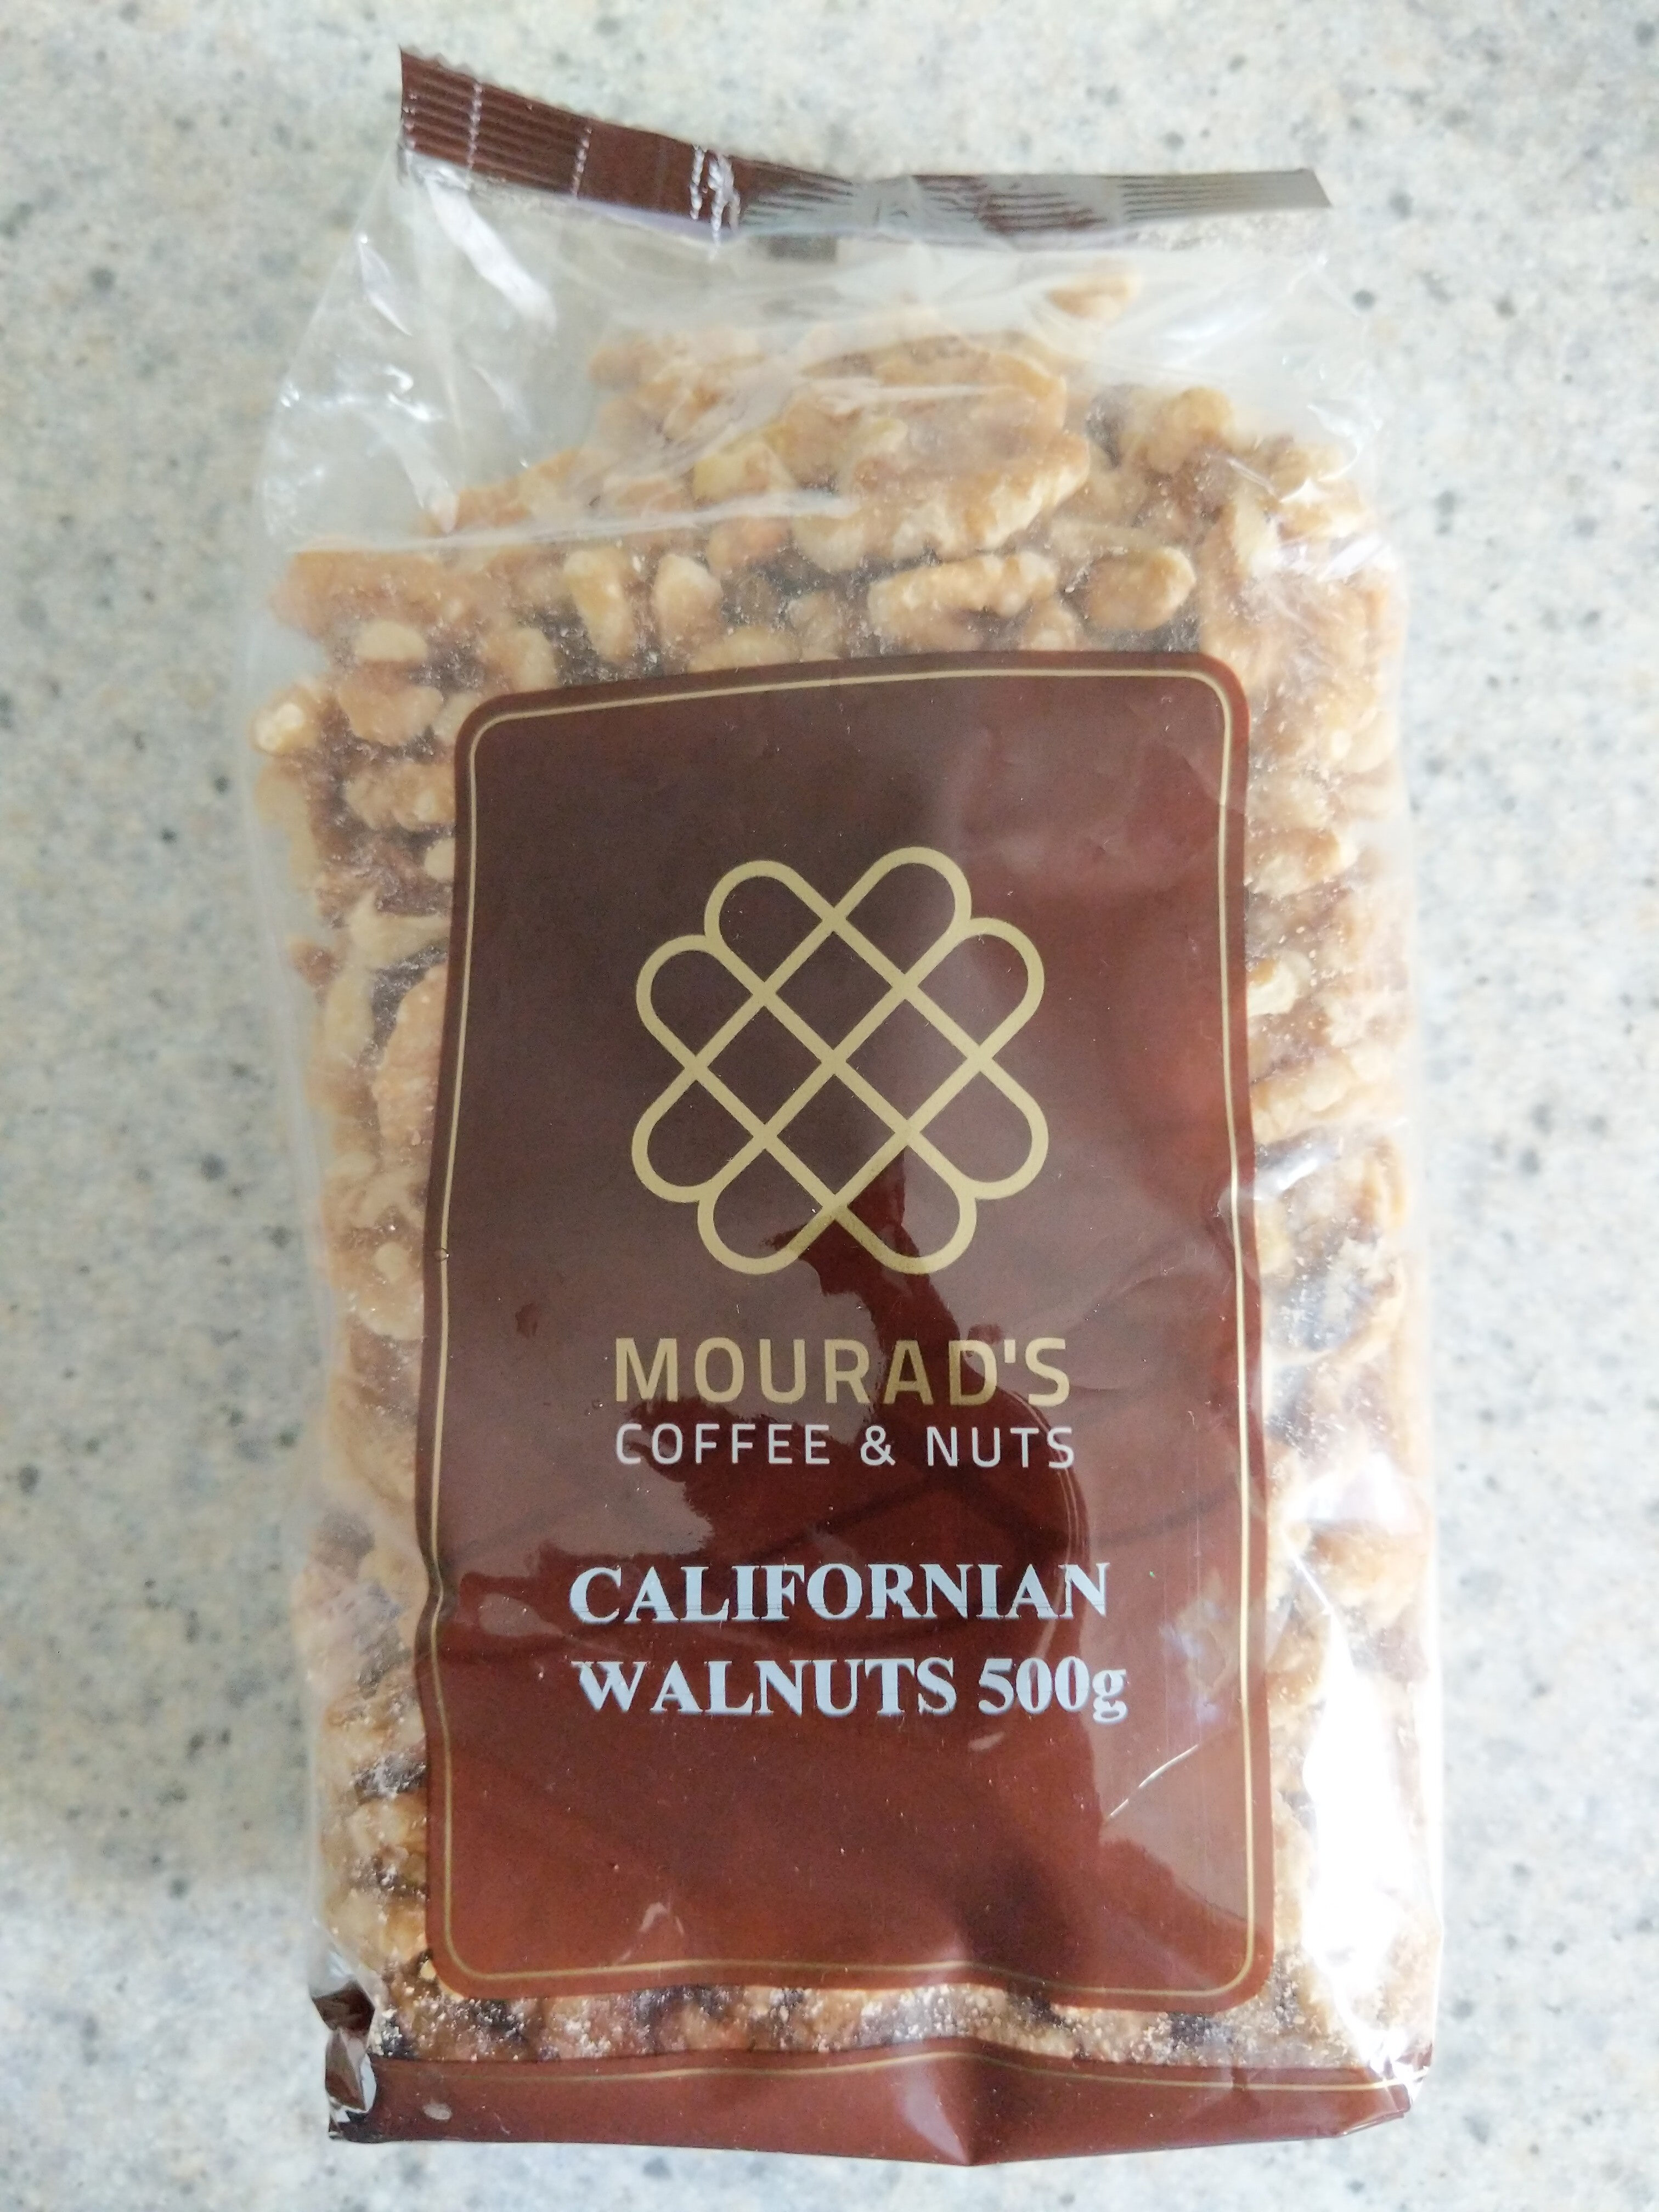 Californian Walnuts - Produit - en